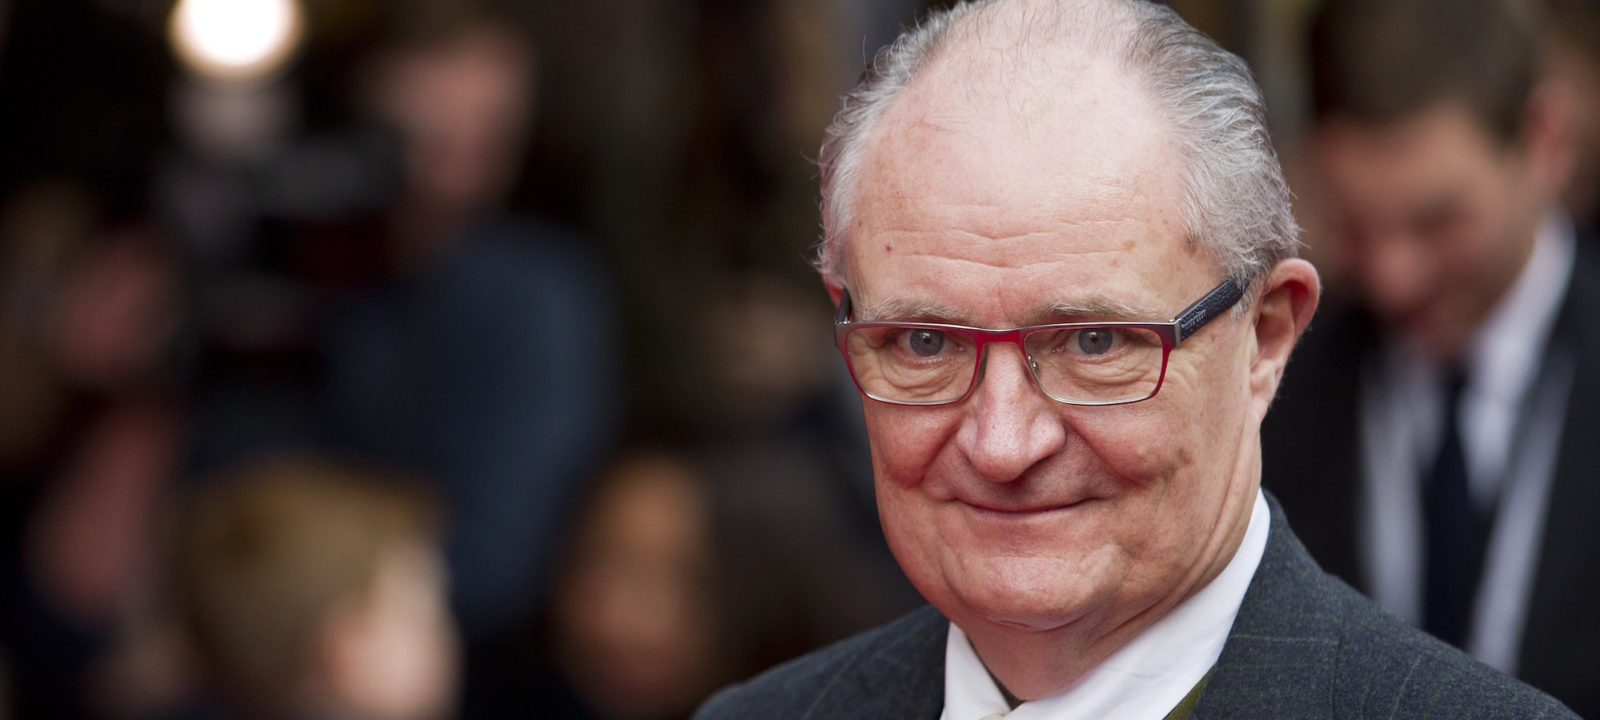 British actor Jim Broadbent poses on the red carpet as he arrives for the World premiere of the film 'Get Santa' in London on November 30, 2014.